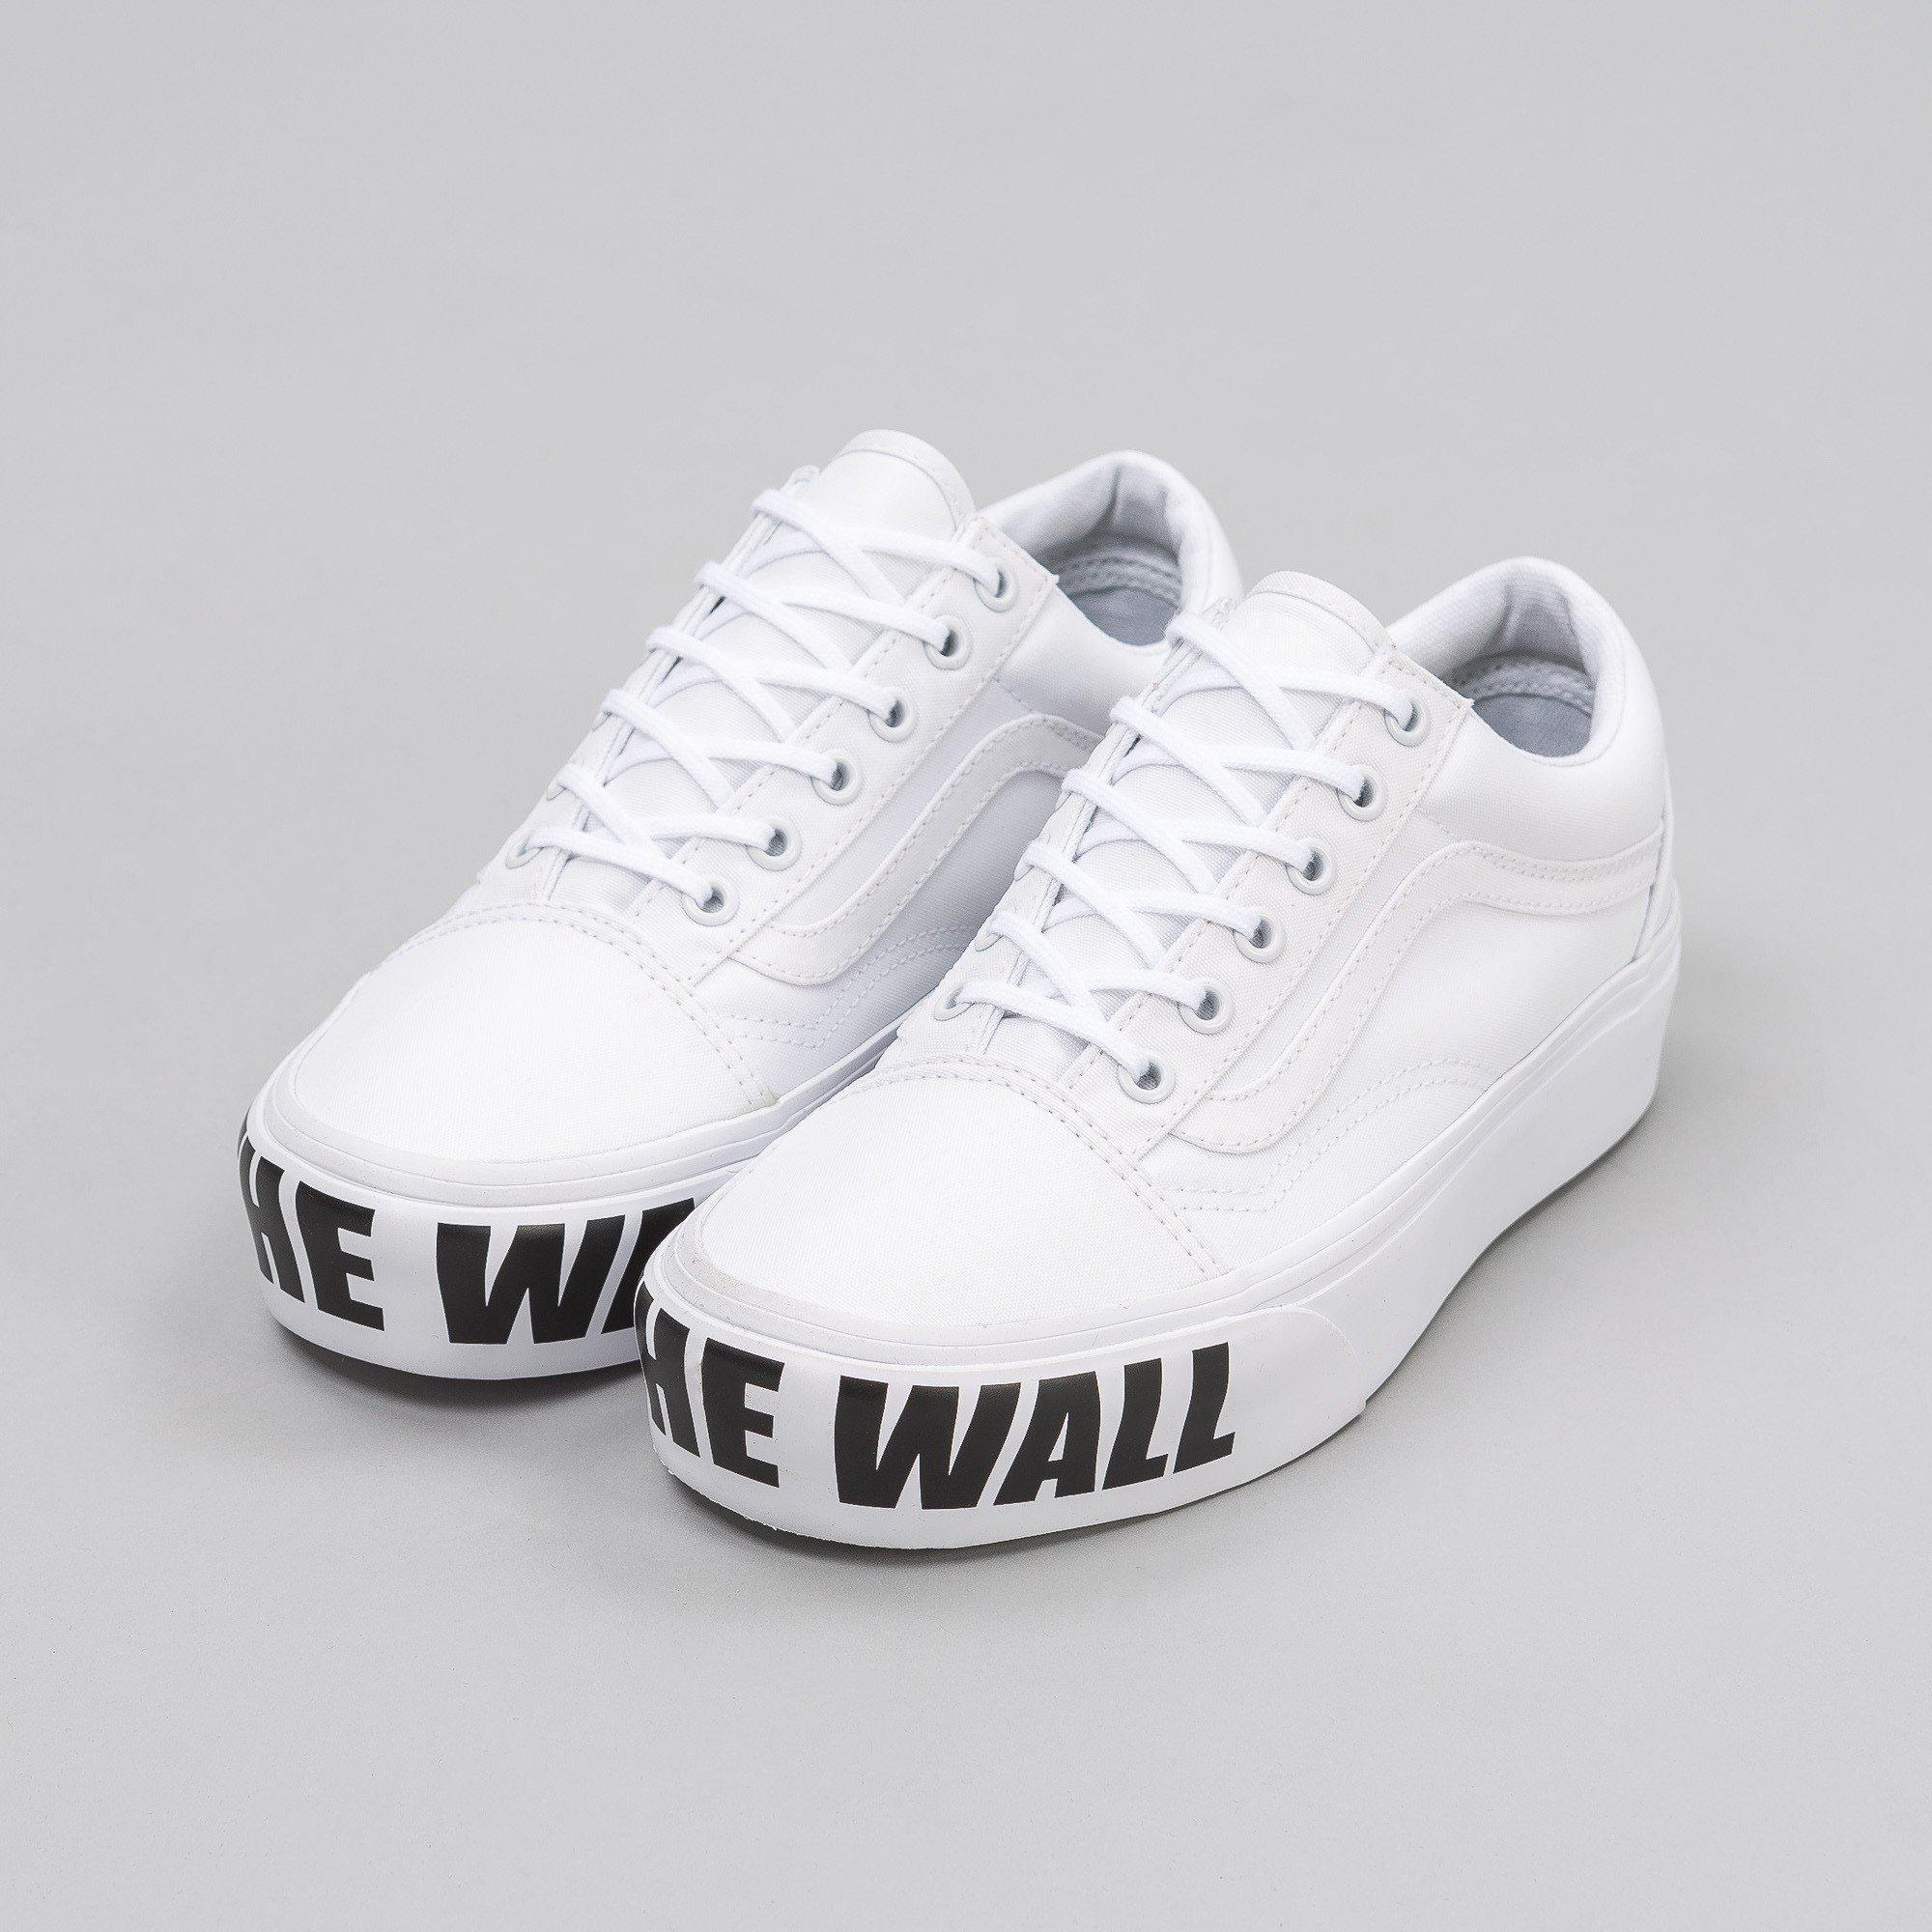 c19d52997d49 Lyst - Vans Old Skool Platform Off The Wall in White for Men